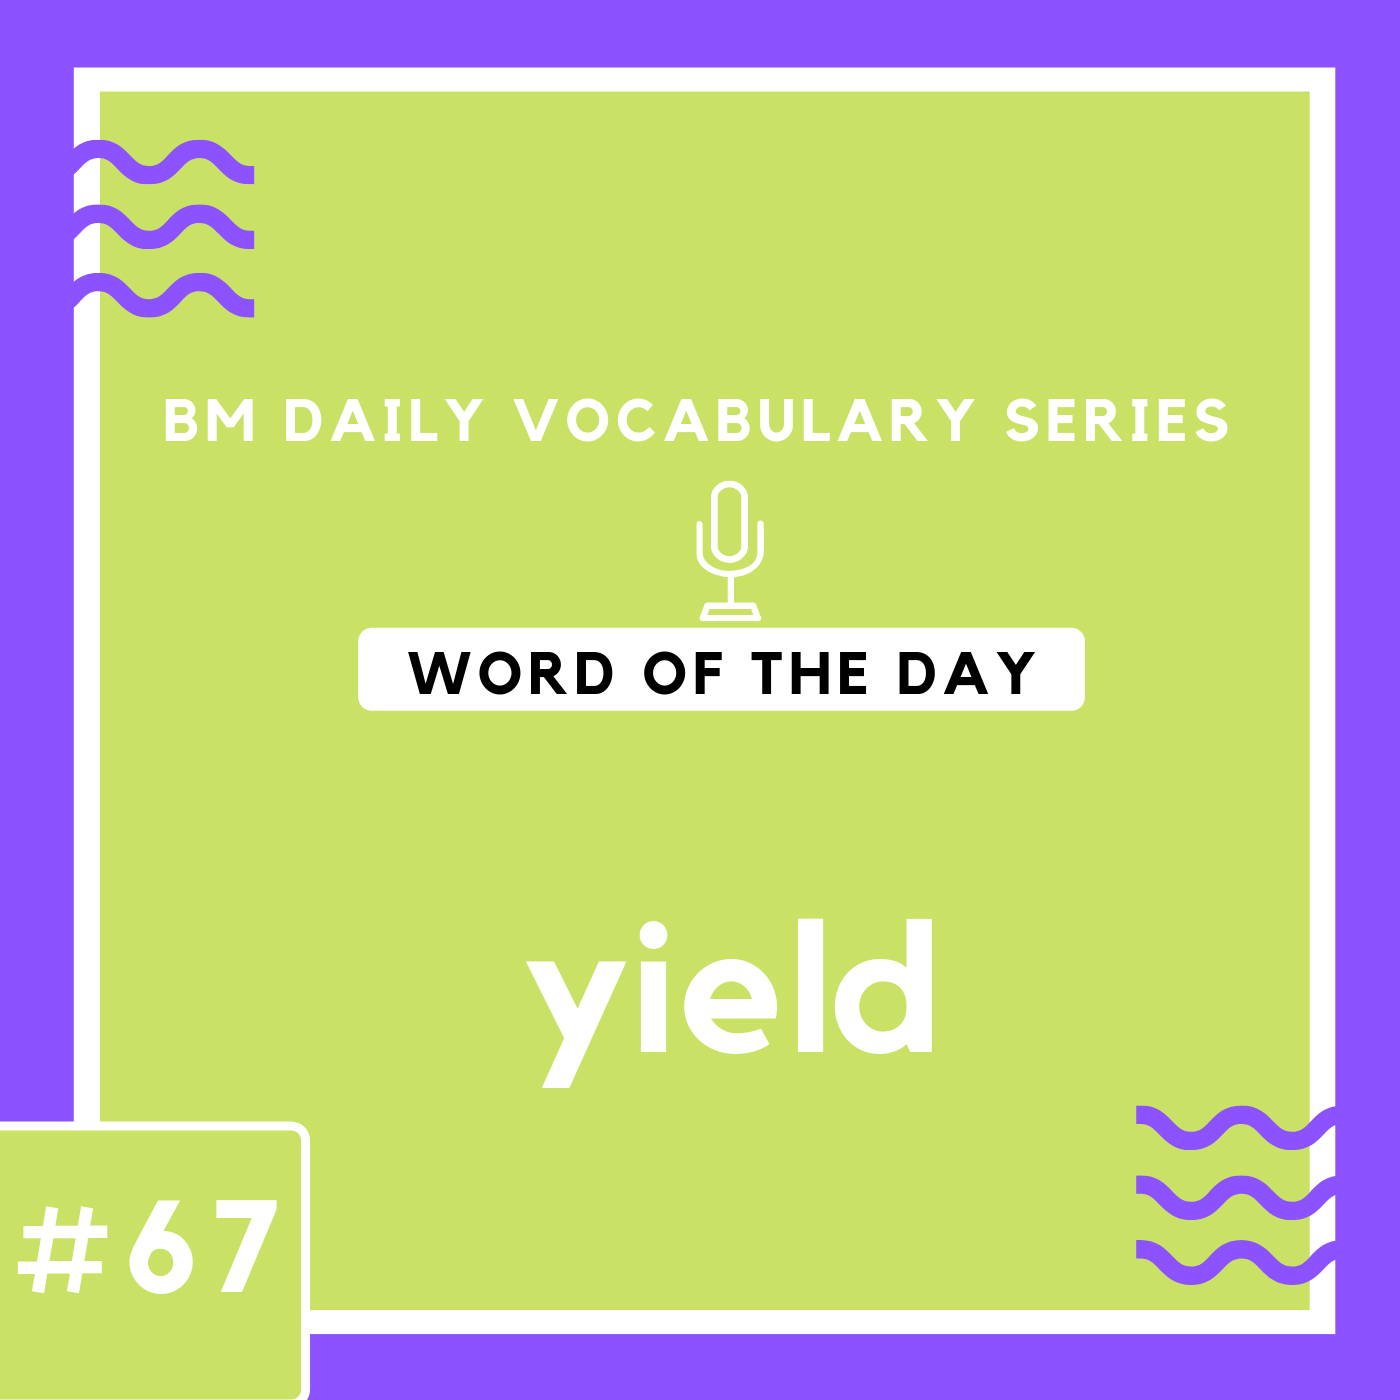 200 BM Daily Vocabulary #67 | yield